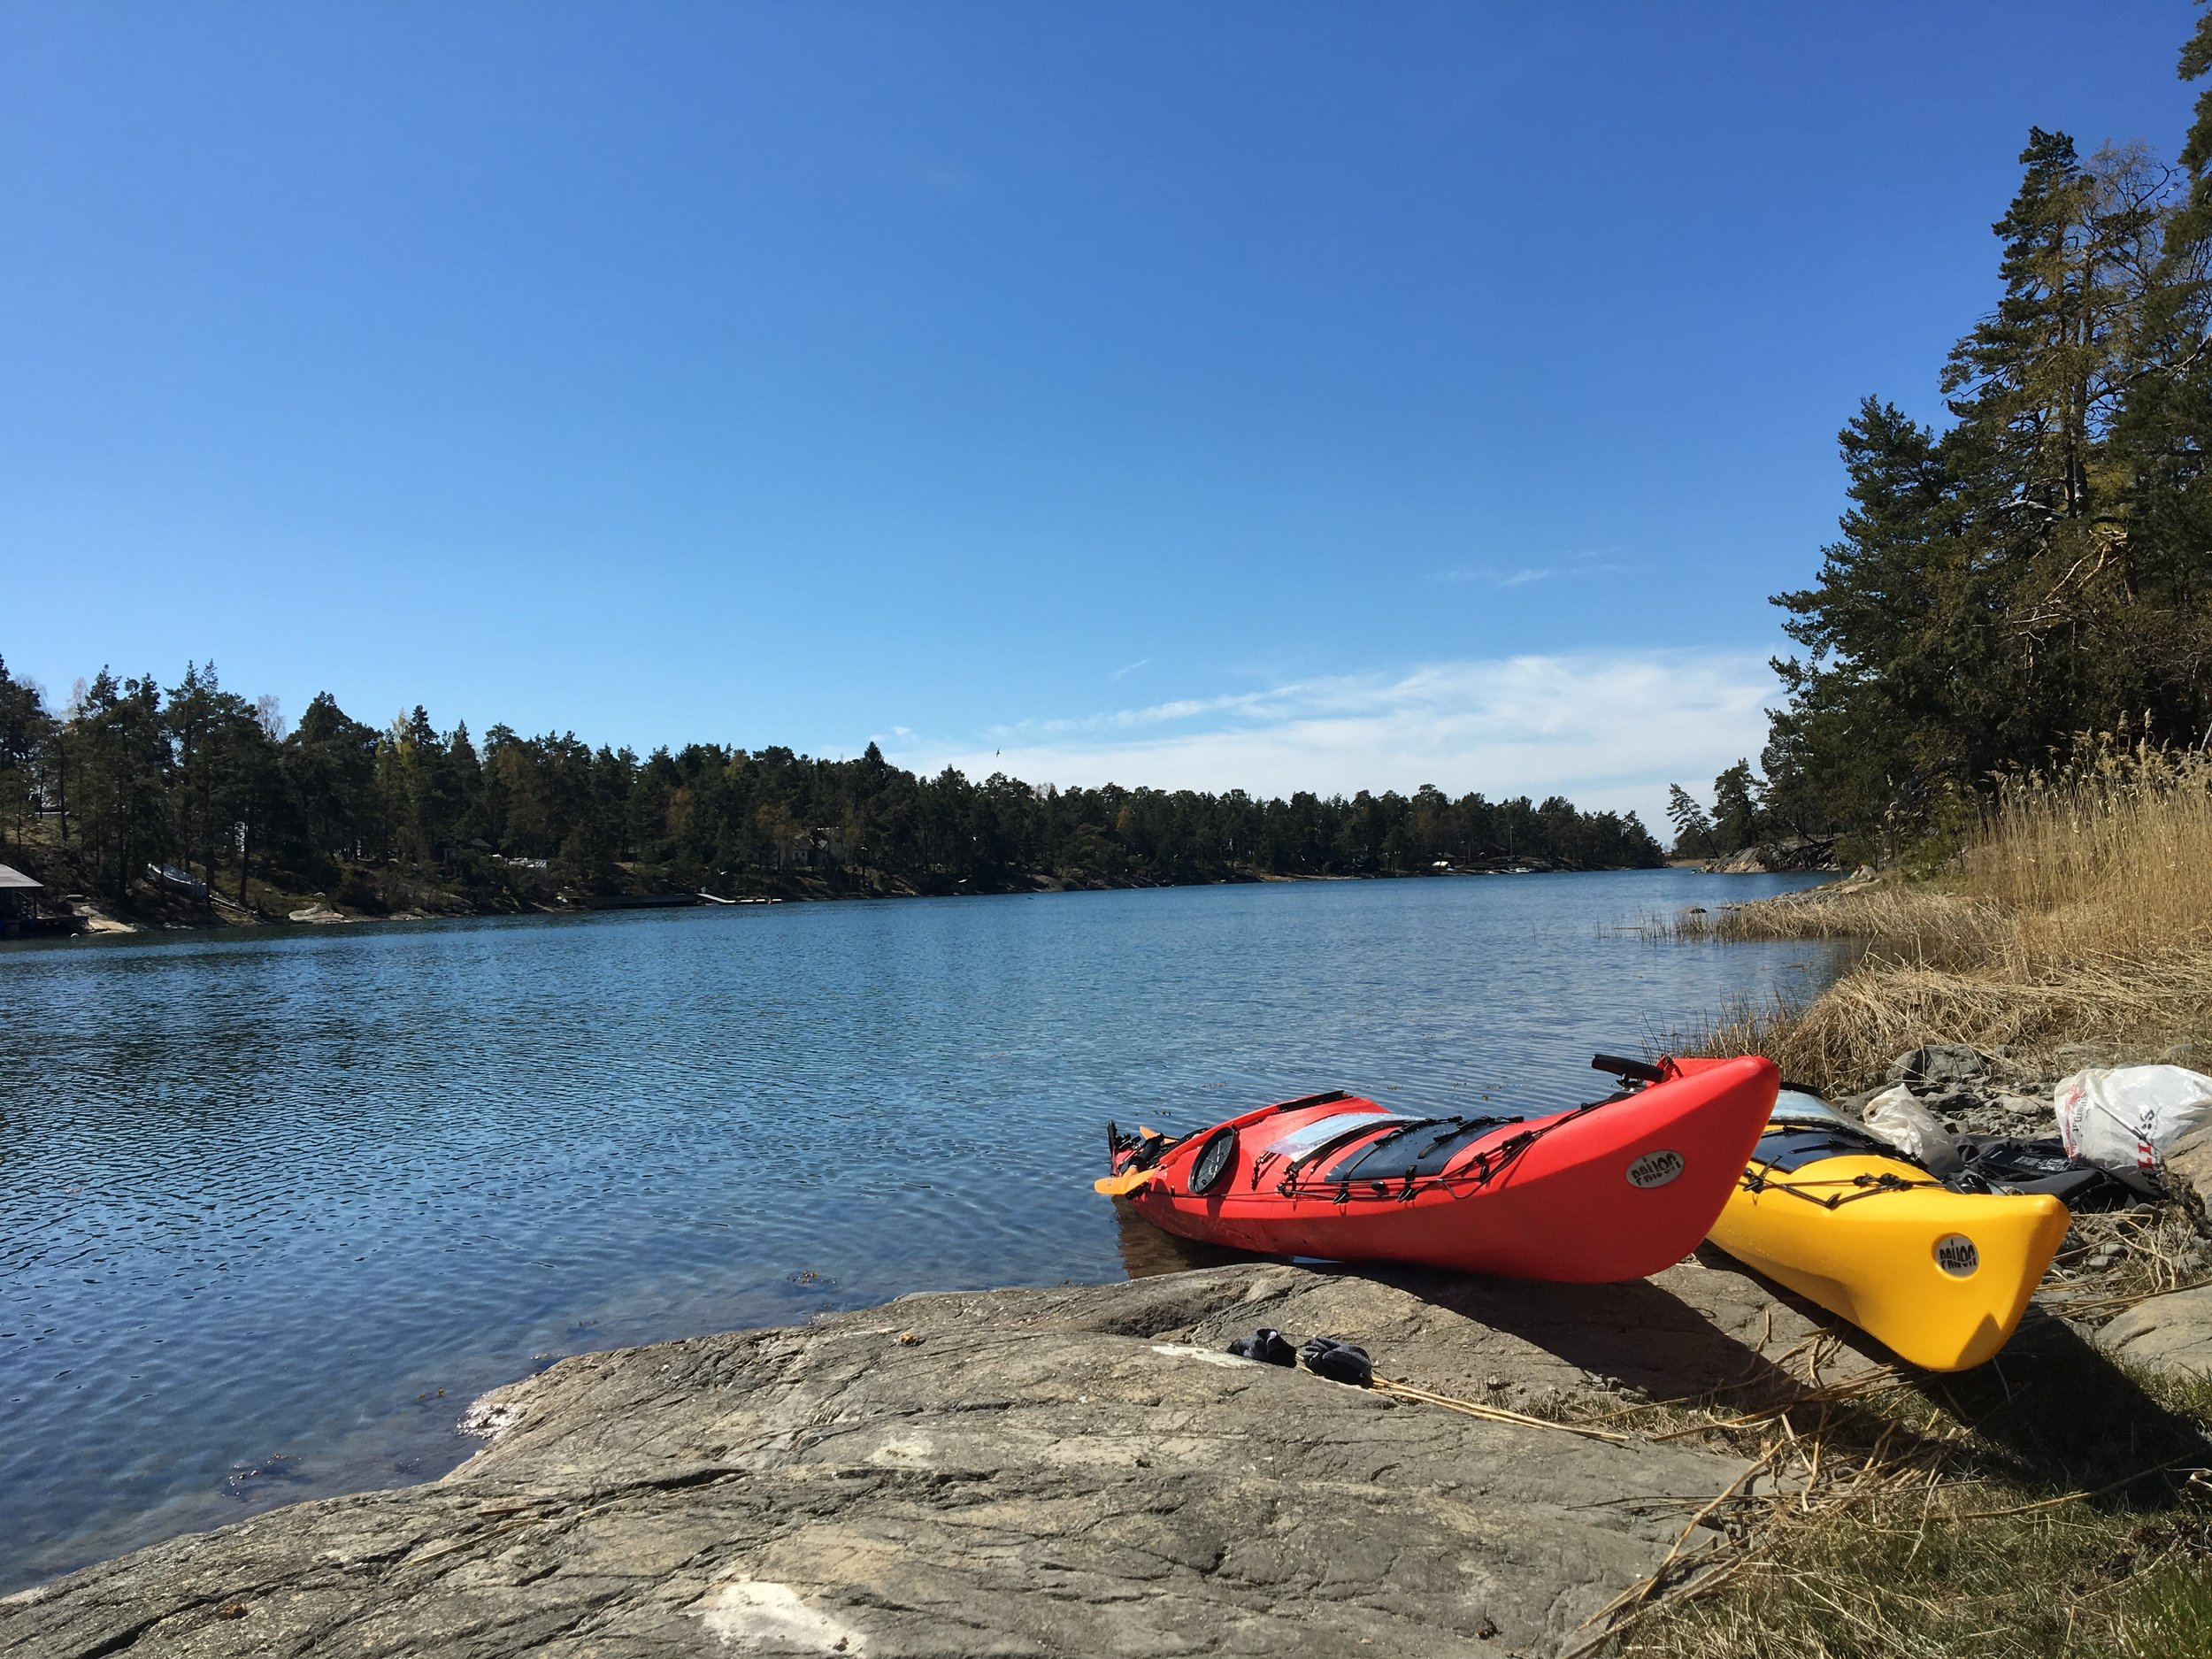 Stockholm Archipelago Kayaking Guided Tours 3 days 2